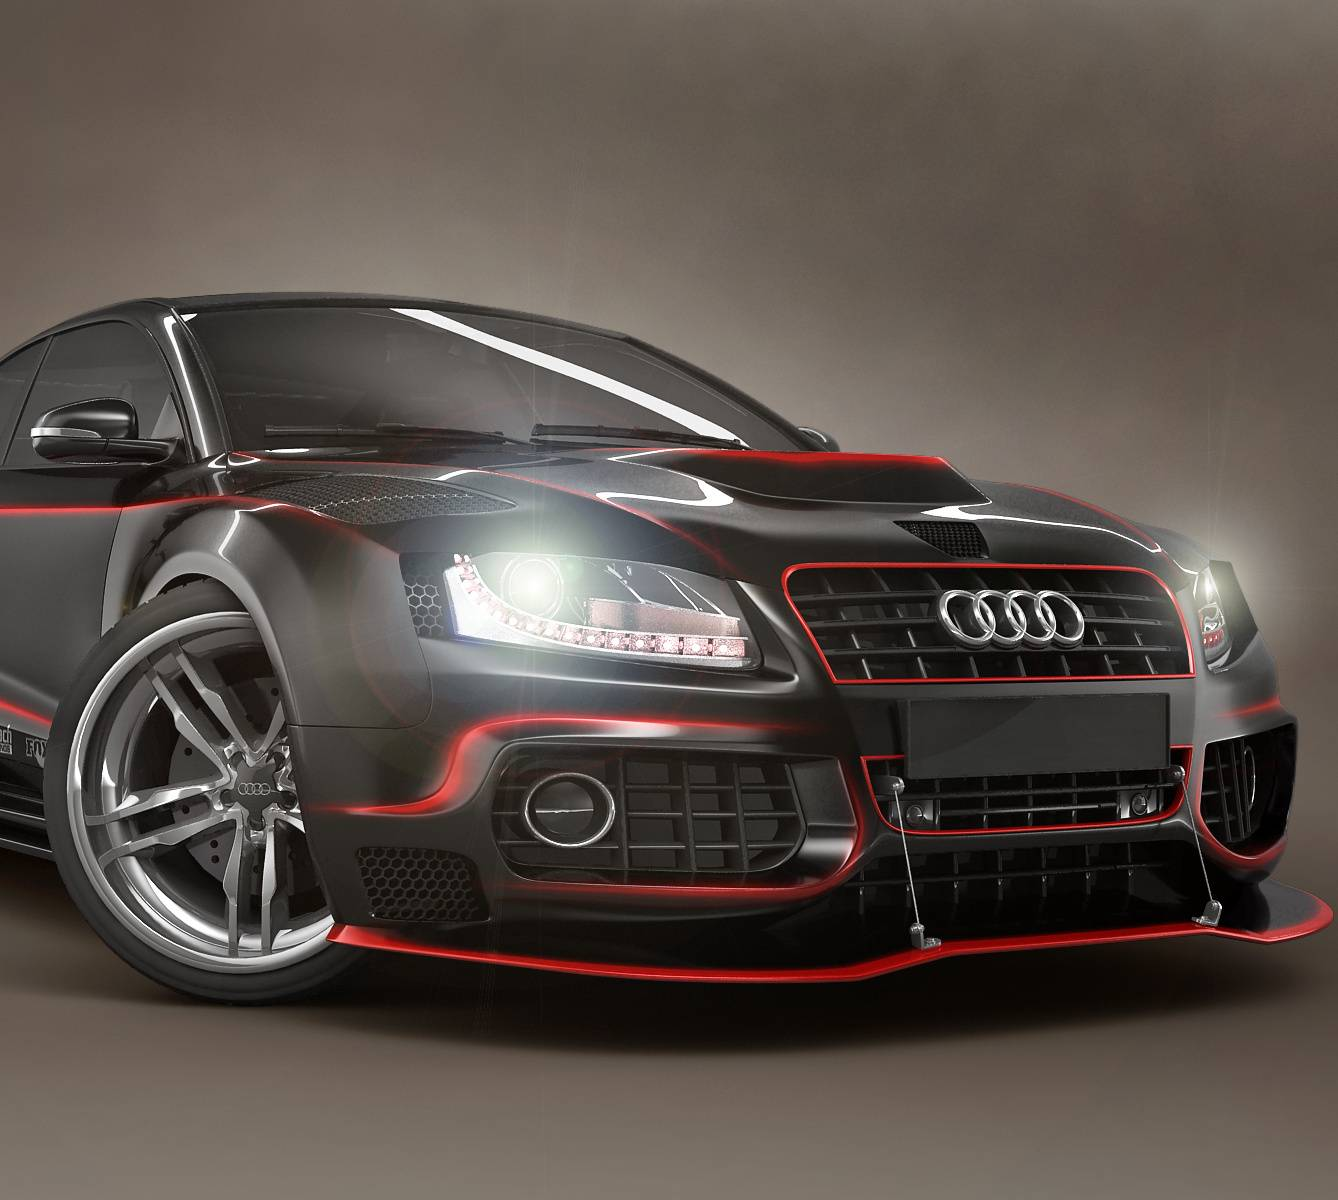 Audi Car Wallpaper by Lord_Bayder - 0e